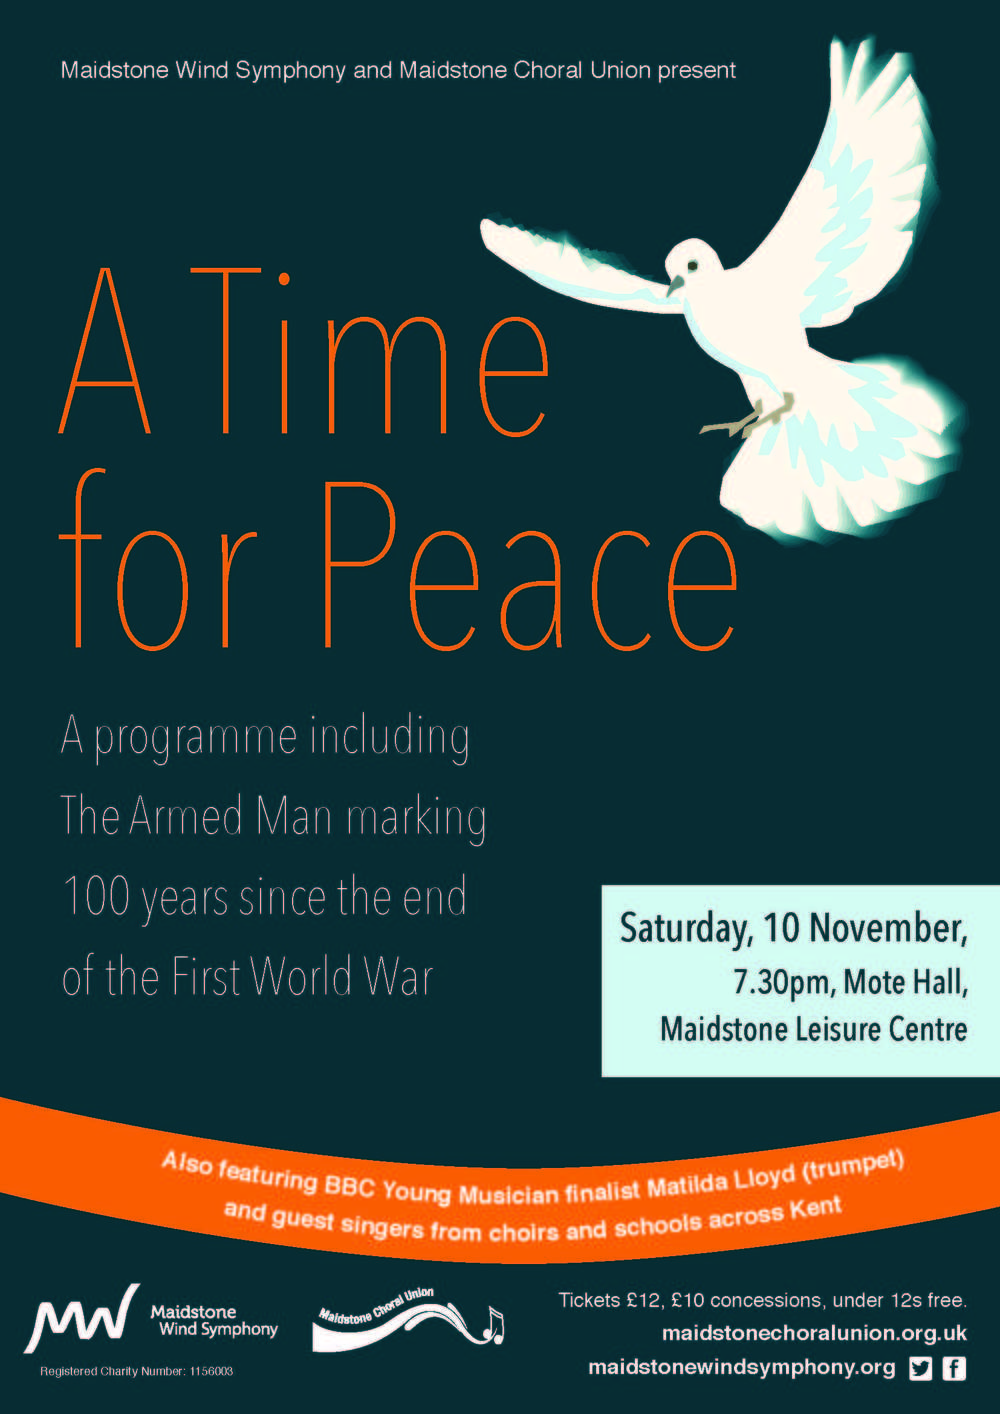 A Time for Peace - A Concert of Remembrance marking 100 years since the end of the First World War